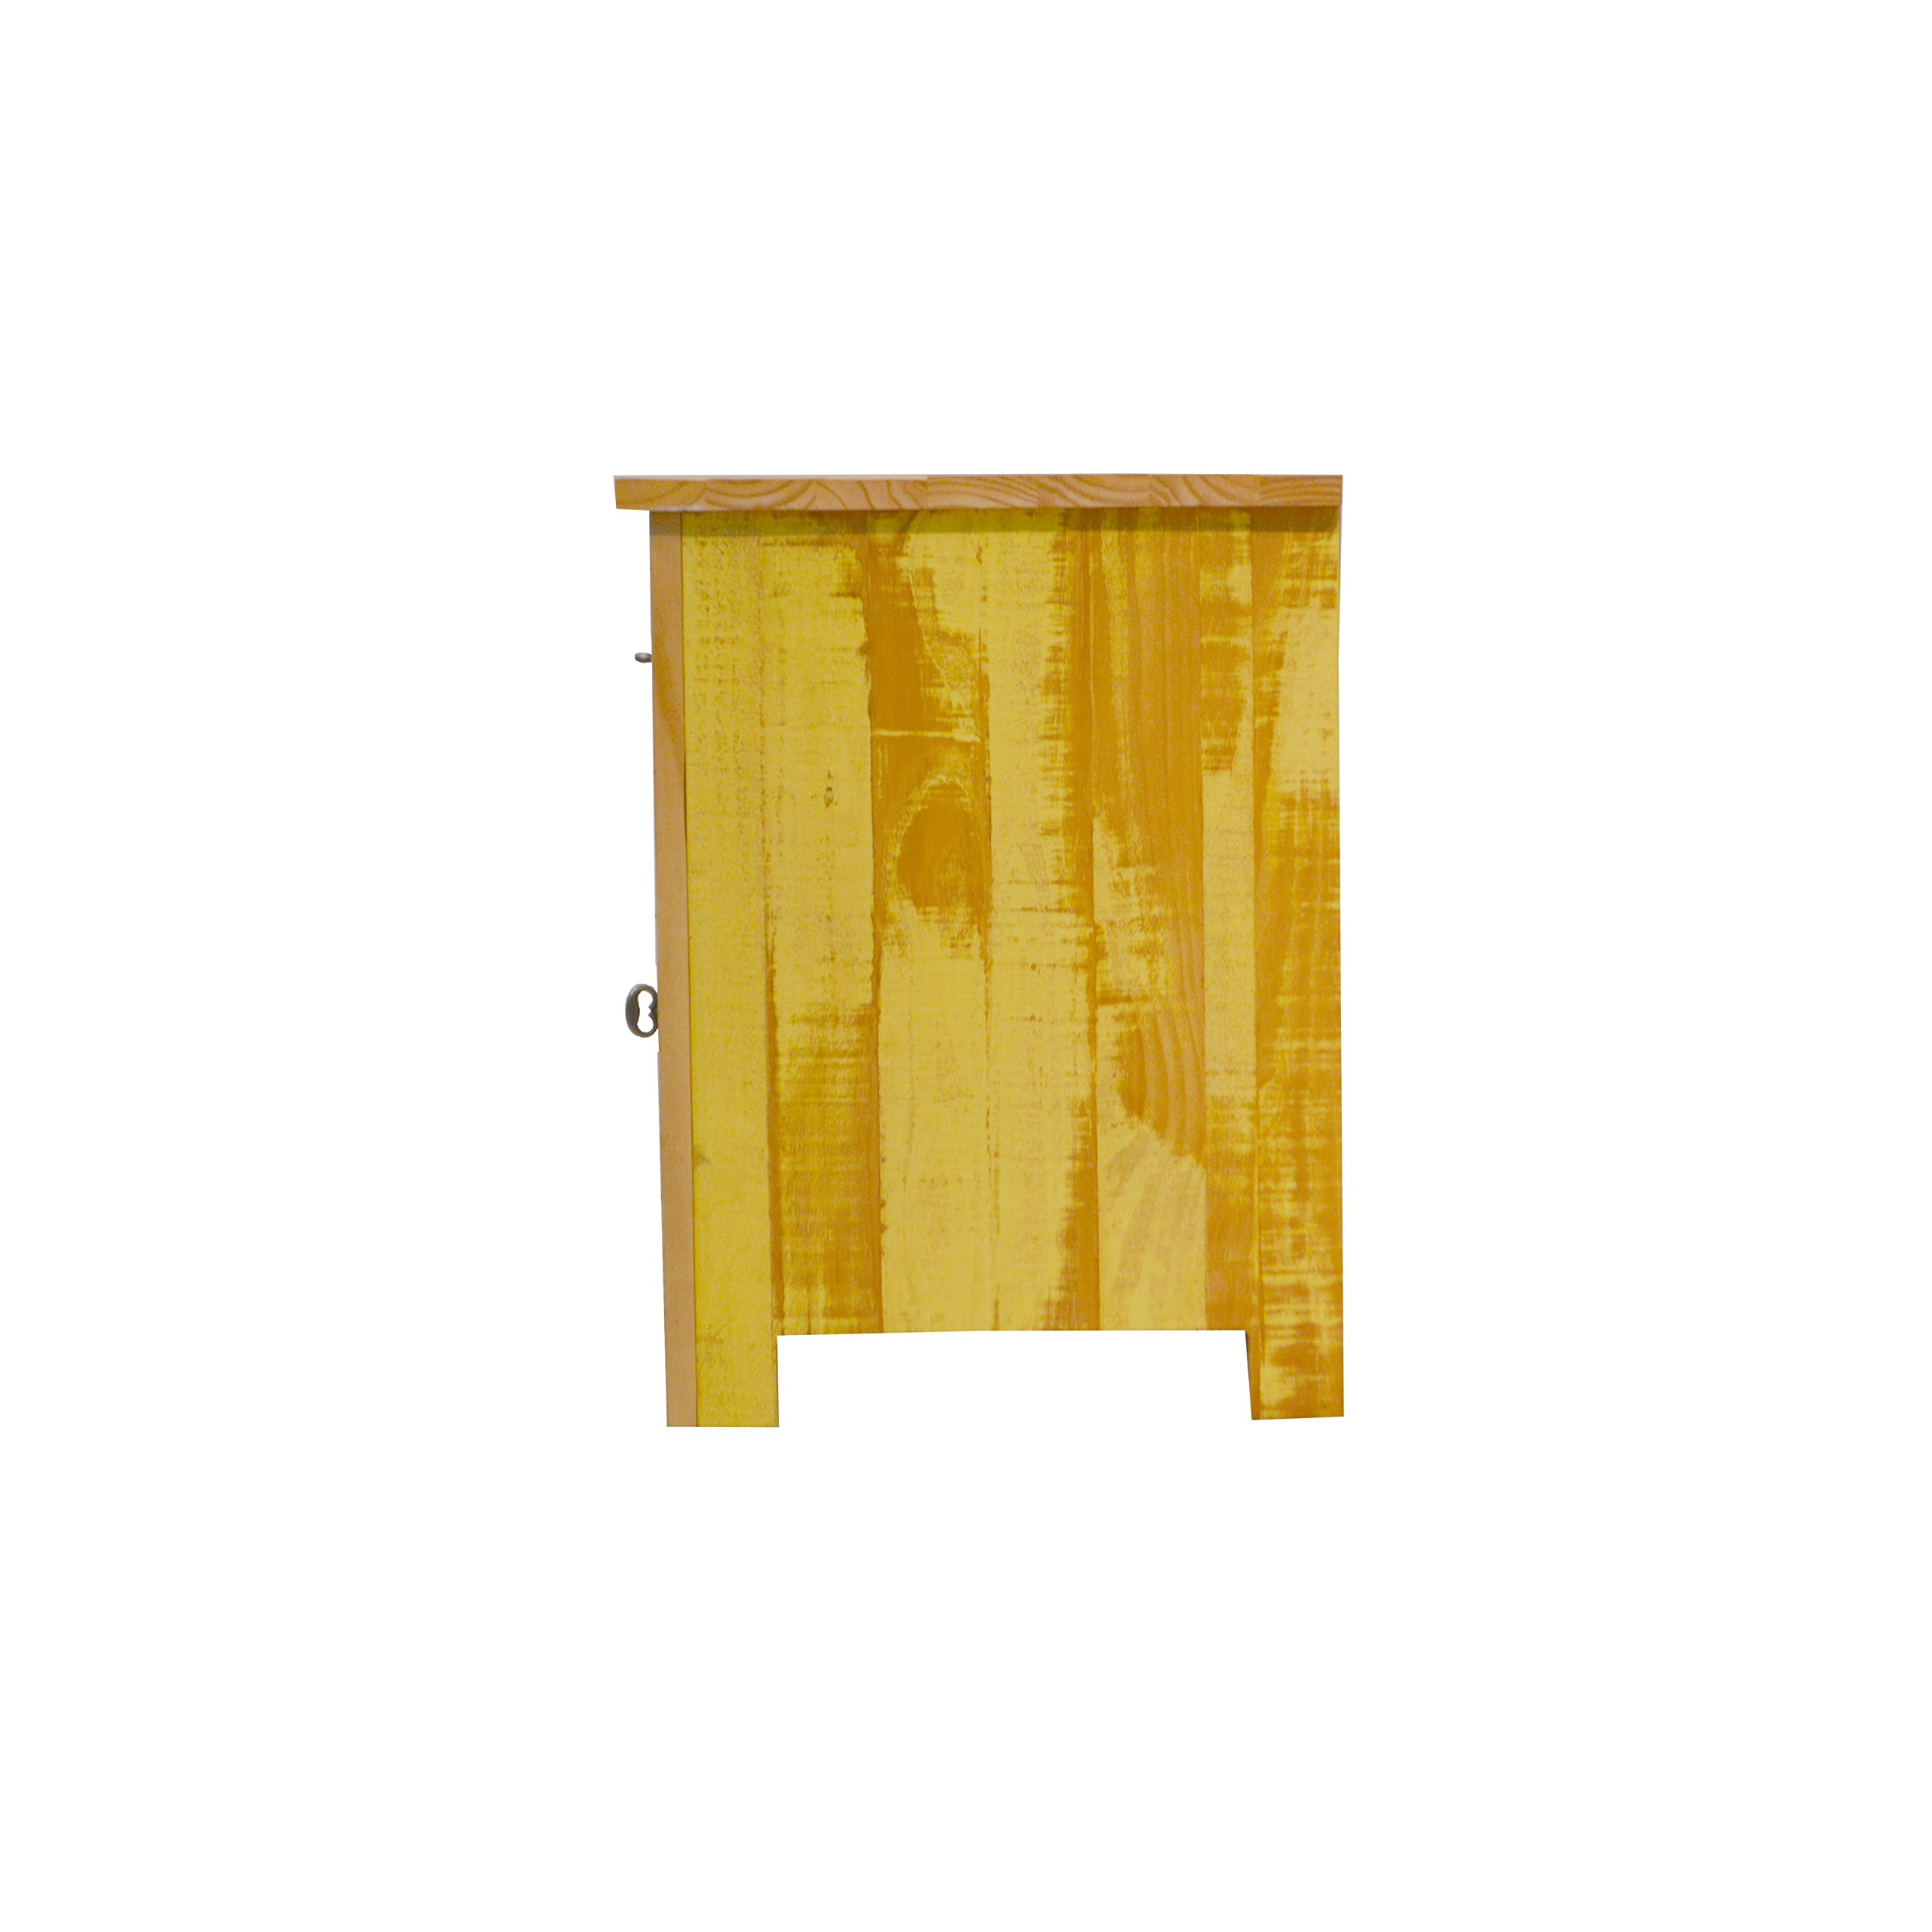 Reclaimed Accent Cabinet Solid Wood Distressed Color by The Beach House Design (Image #4)